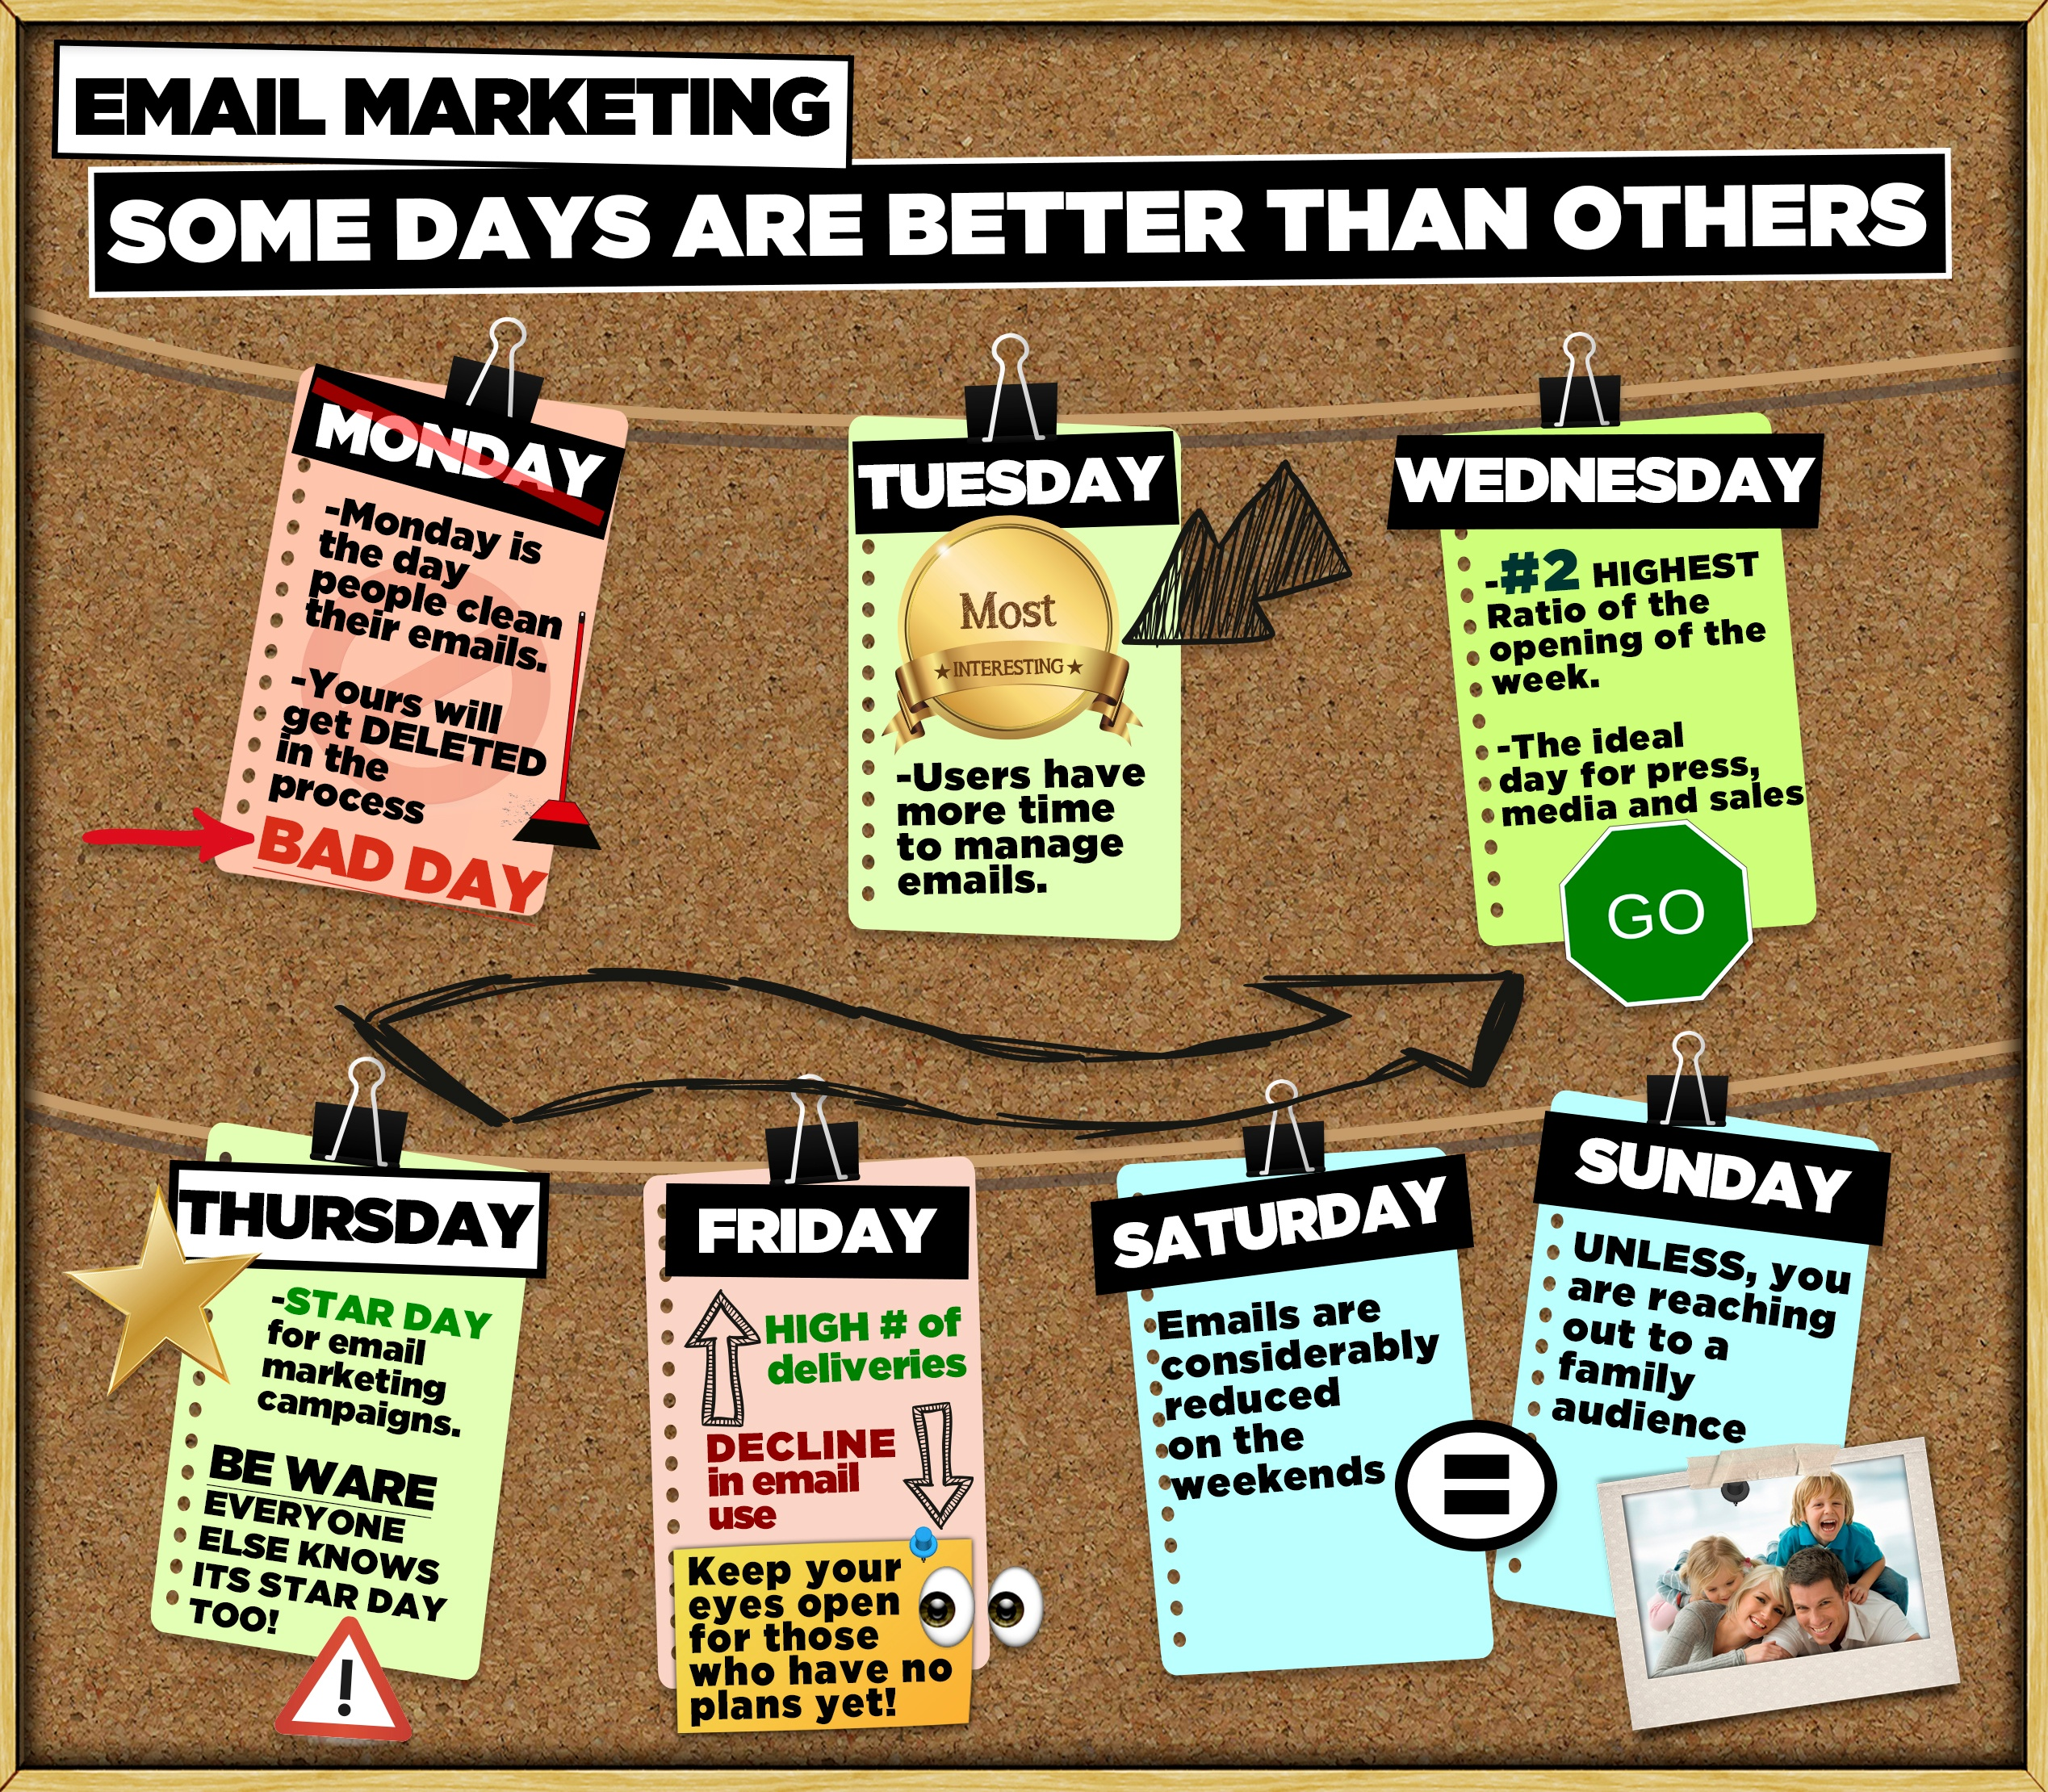 Infographic_EmailMarketing.jpg